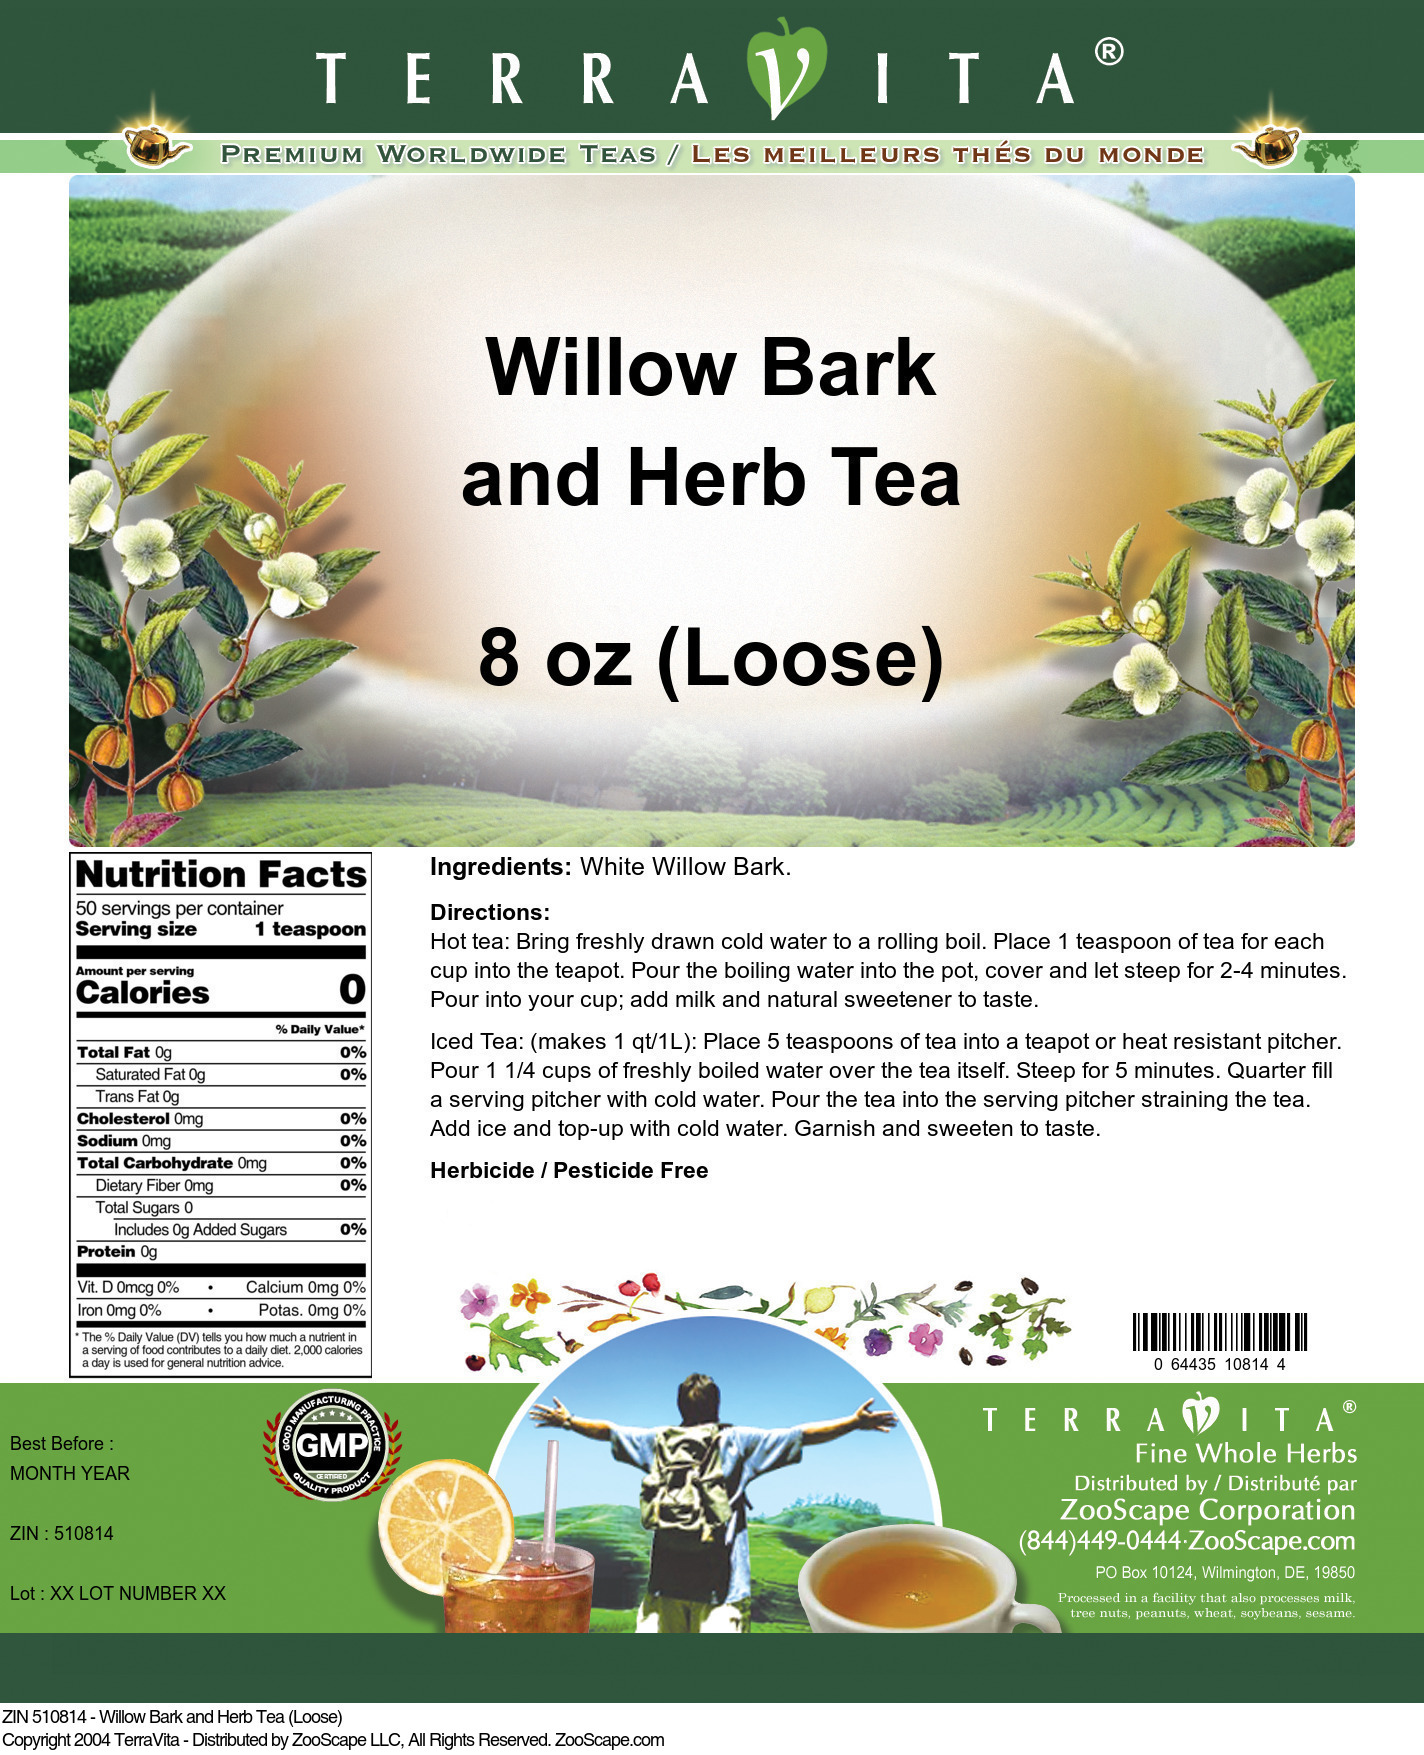 Willow Bark and Herb Tea (Loose)